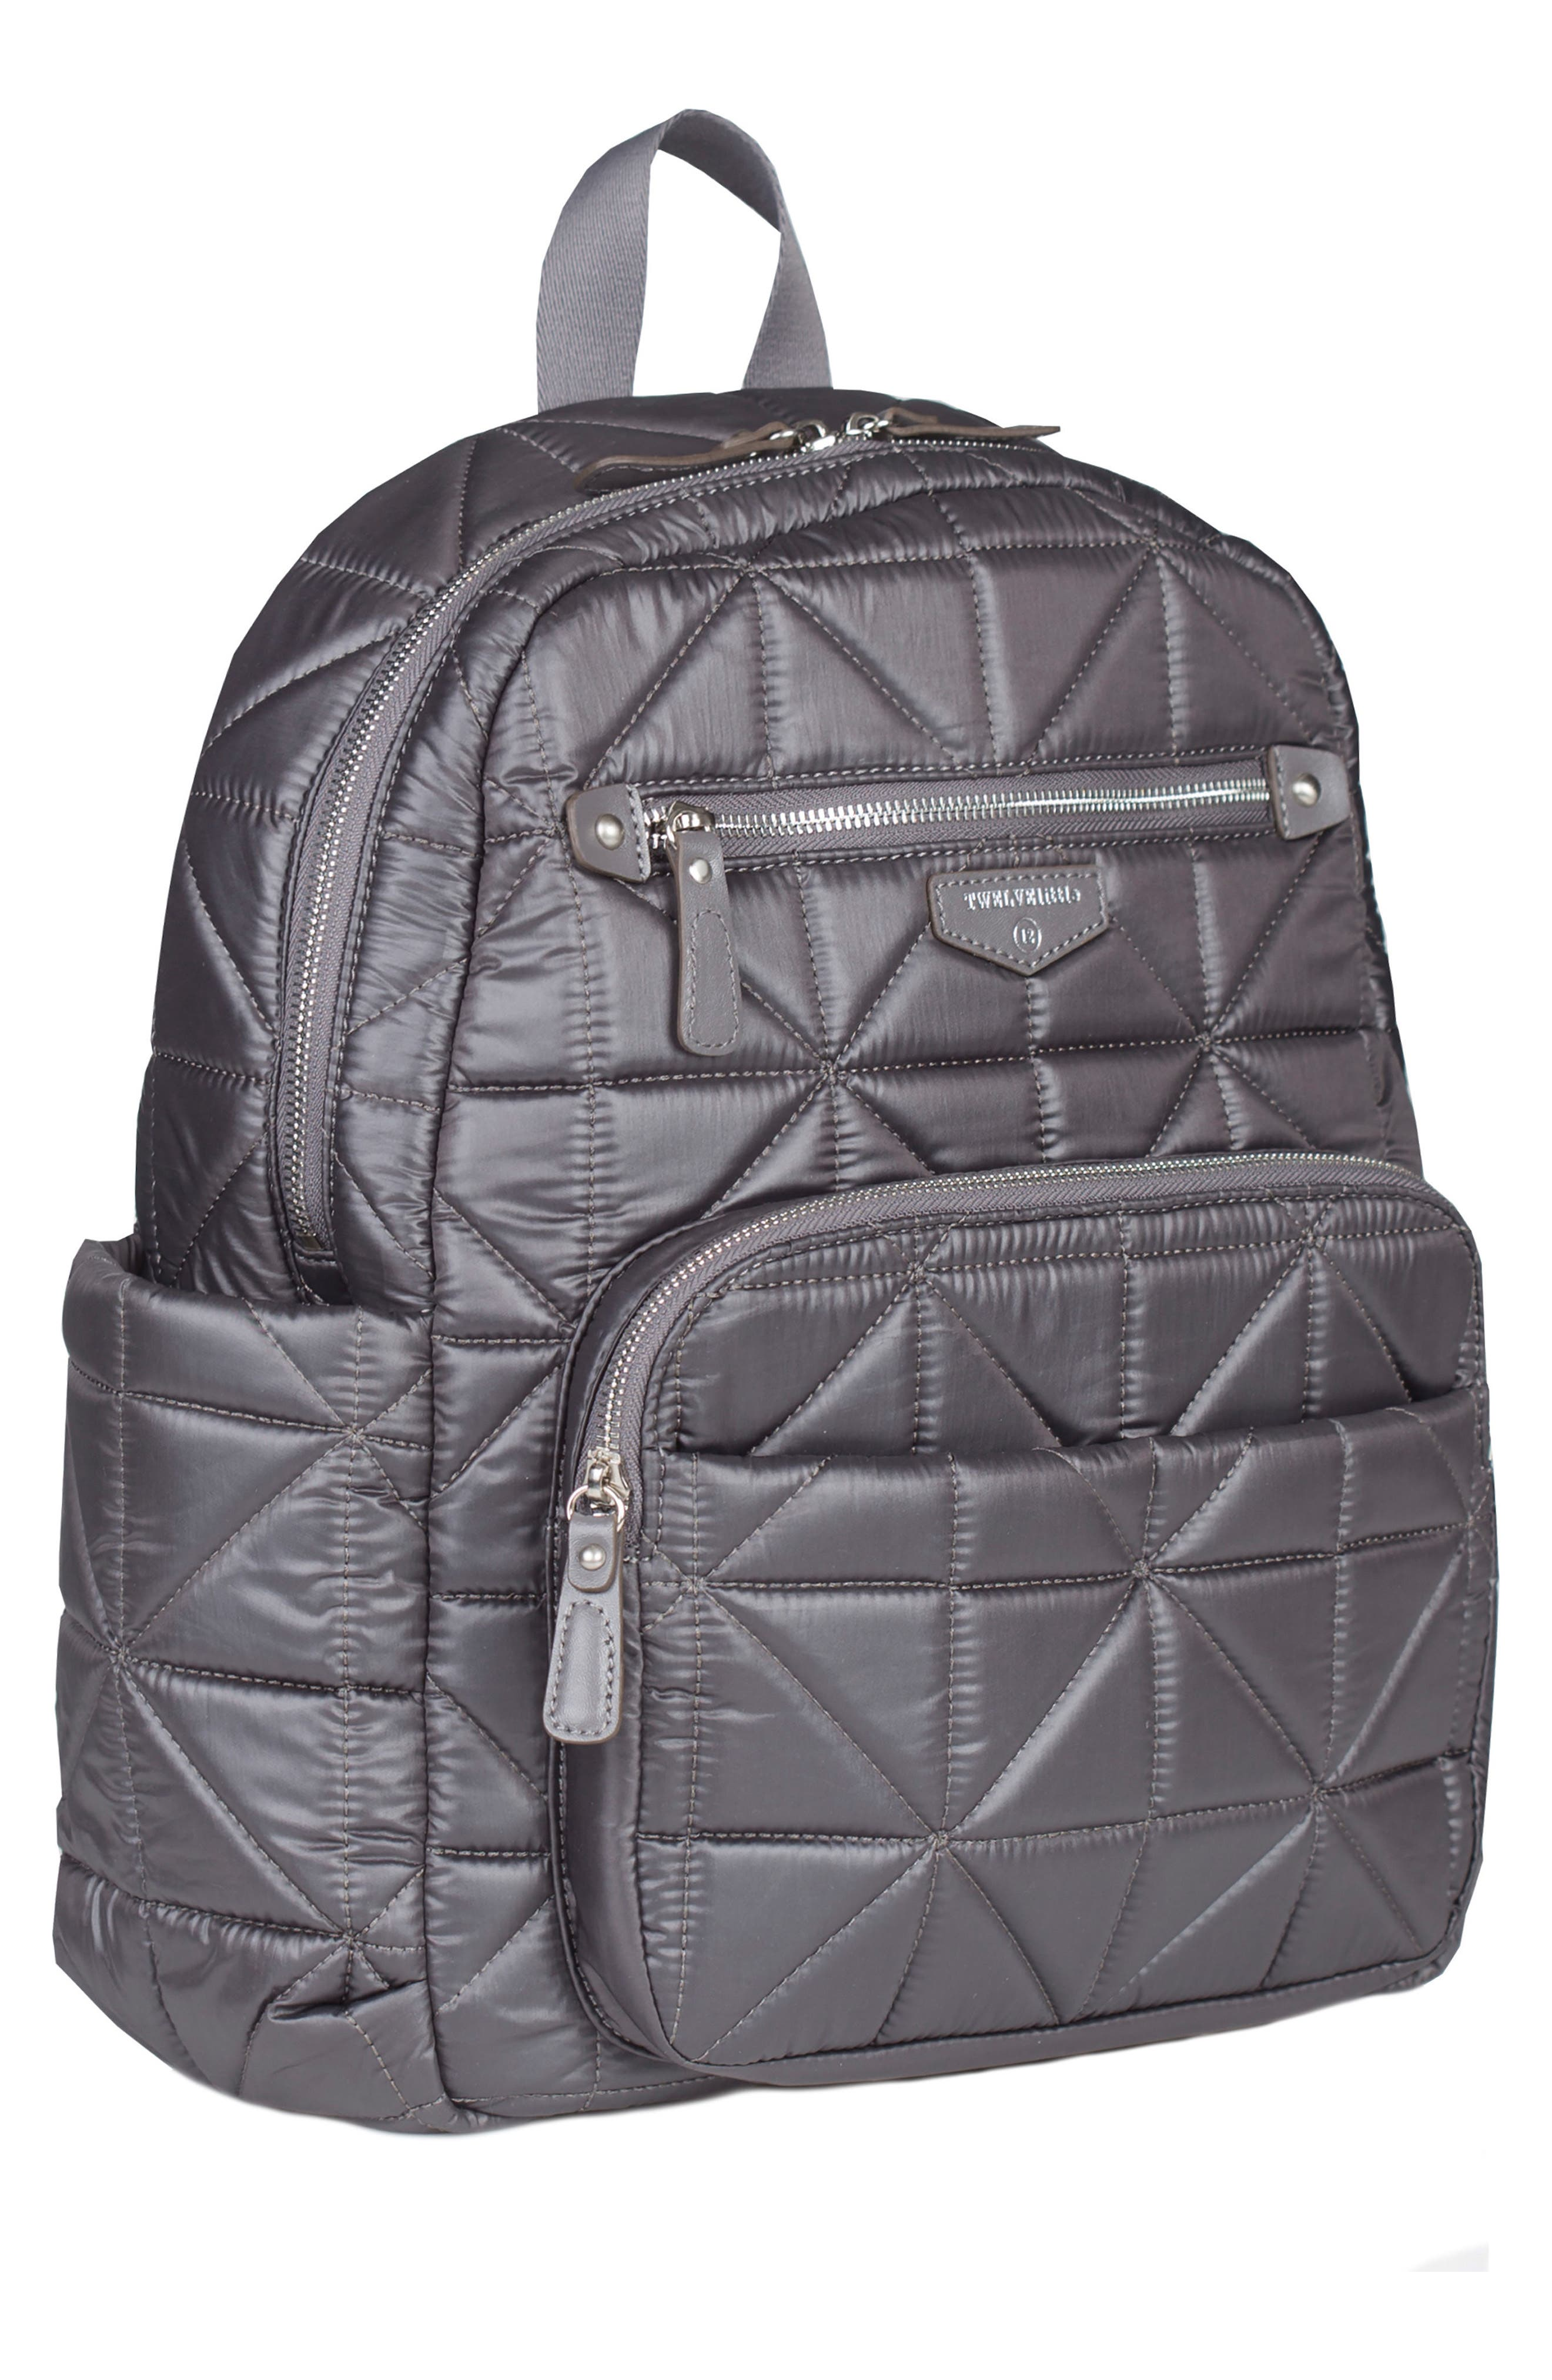 Companion Quilted Nylon Diaper Backpack,                             Alternate thumbnail 4, color,                             PLATINUM